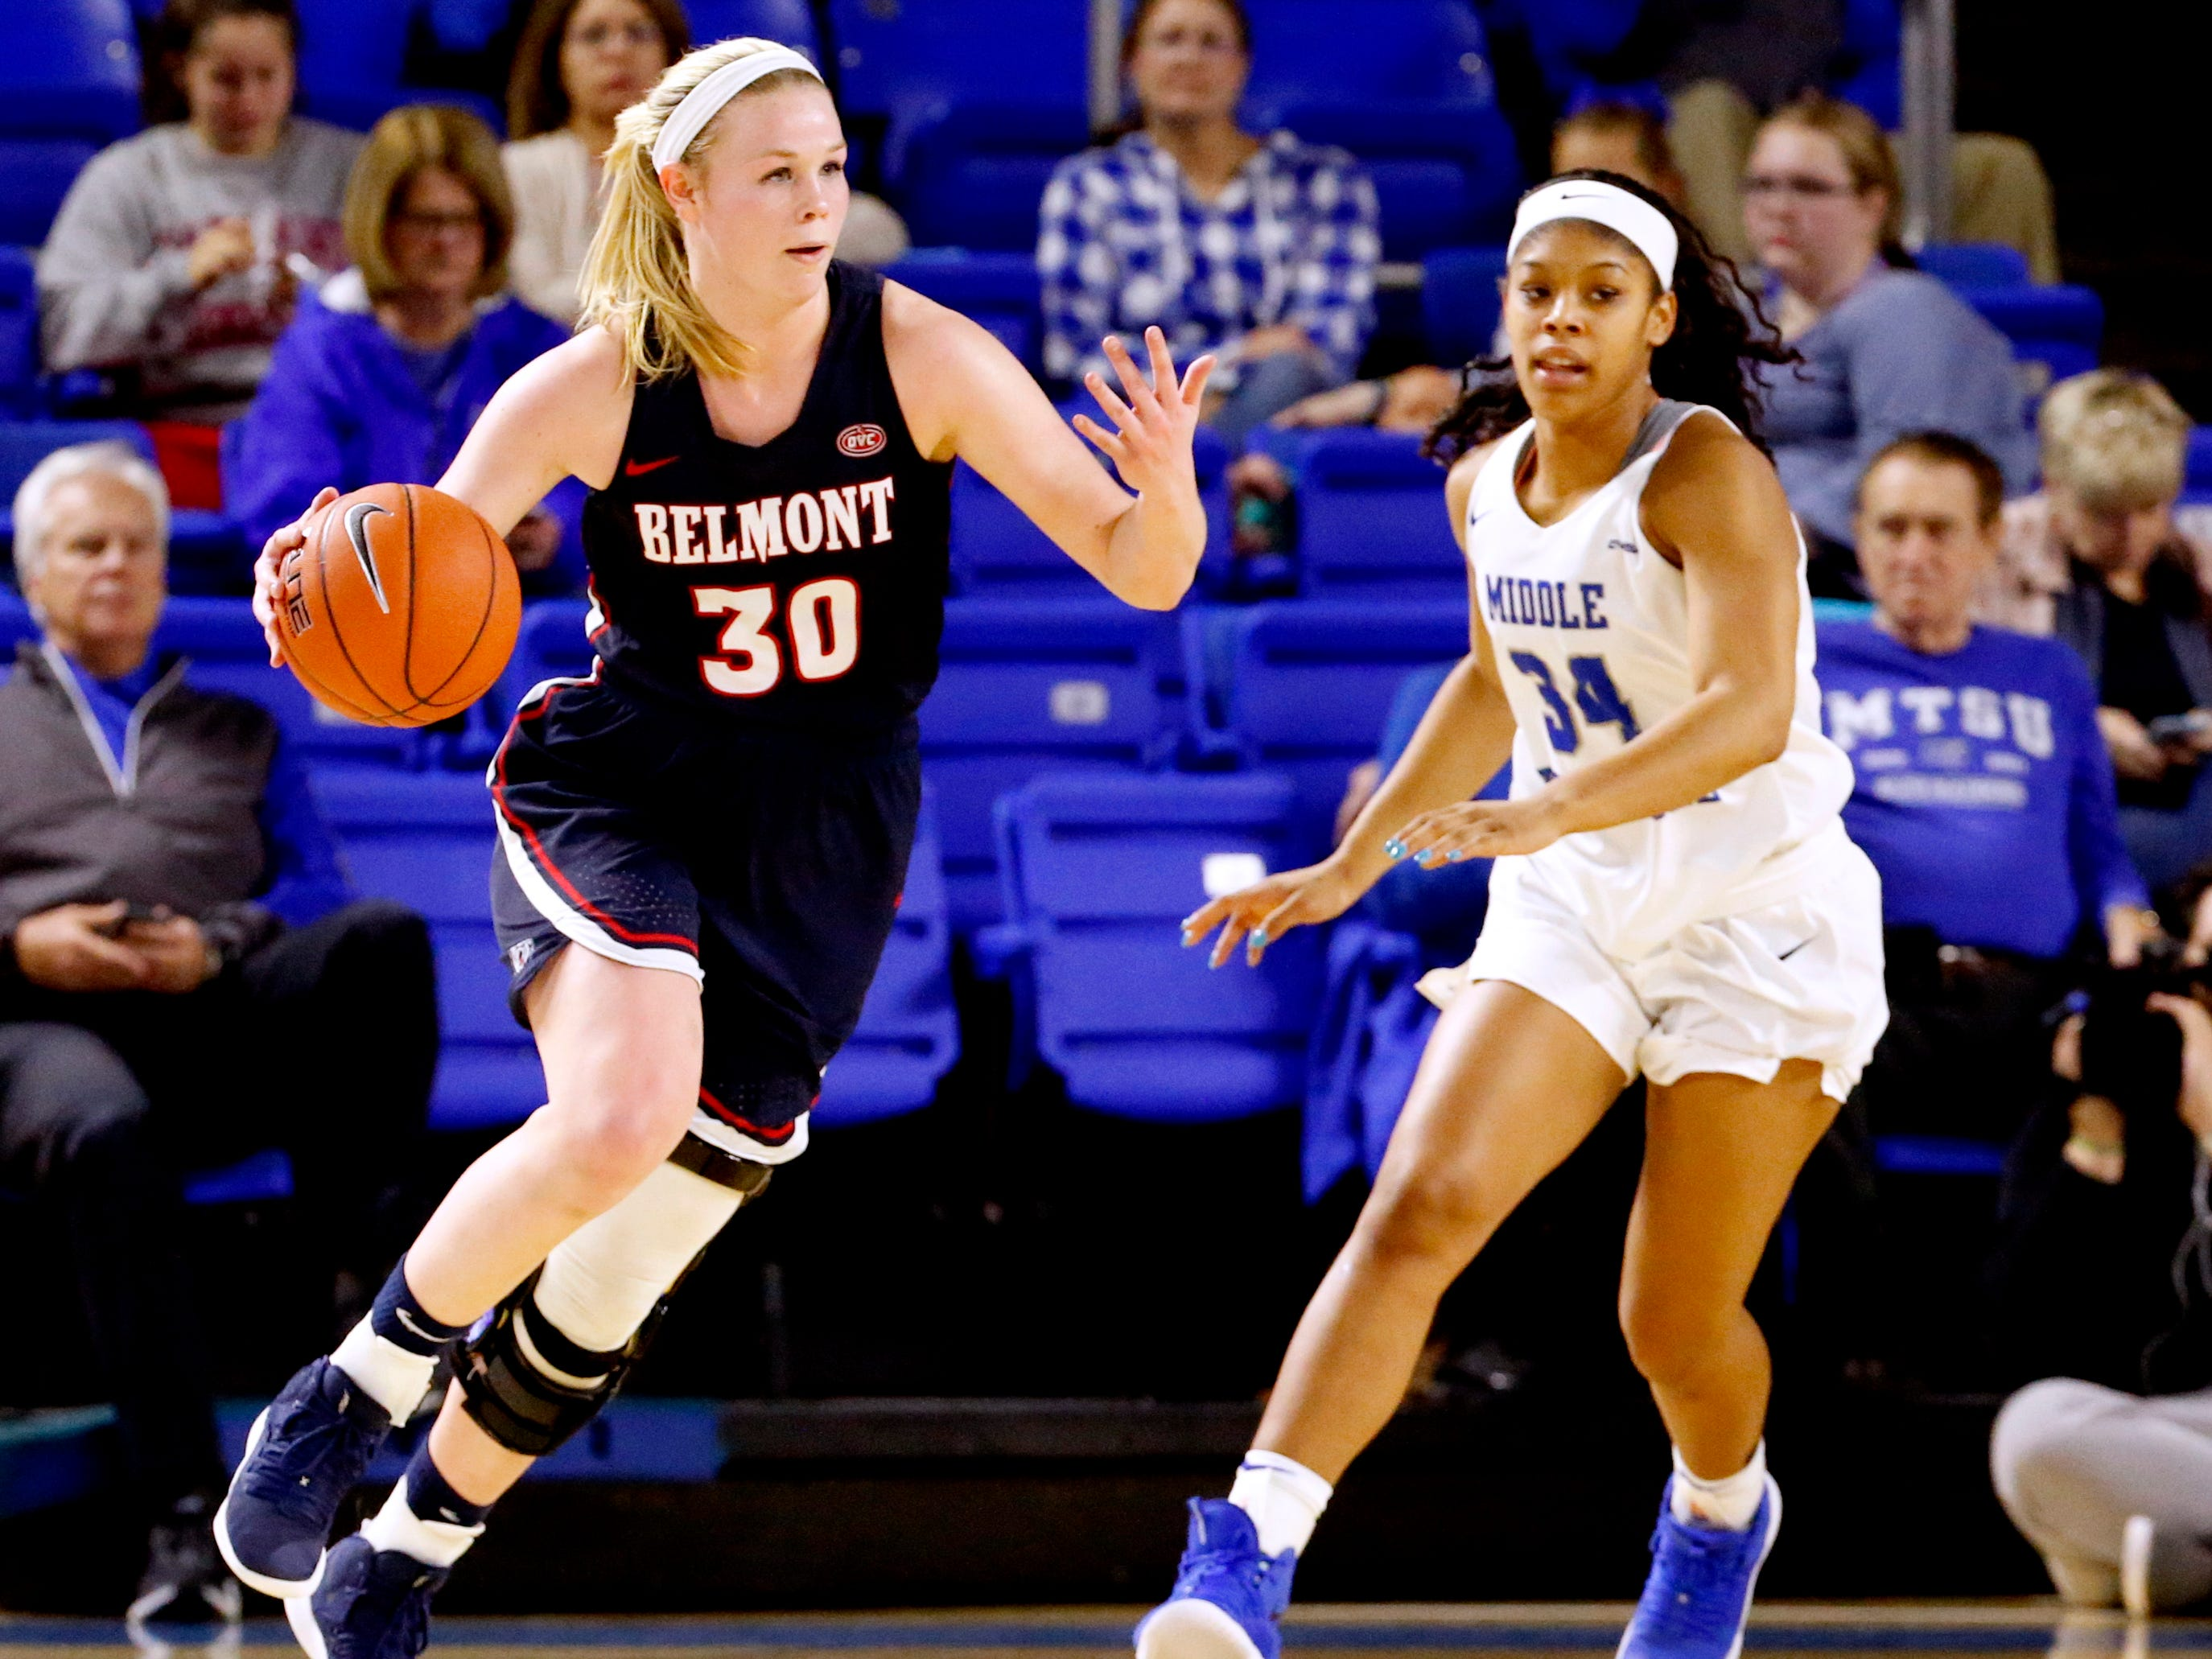 Belmont's Ellie Harmeyer (30) moves the ball around the court as MTSU's Mykia Dowdell (34) comes up from behind during the game at MTSU on Monday, Nov. 19, 2018.